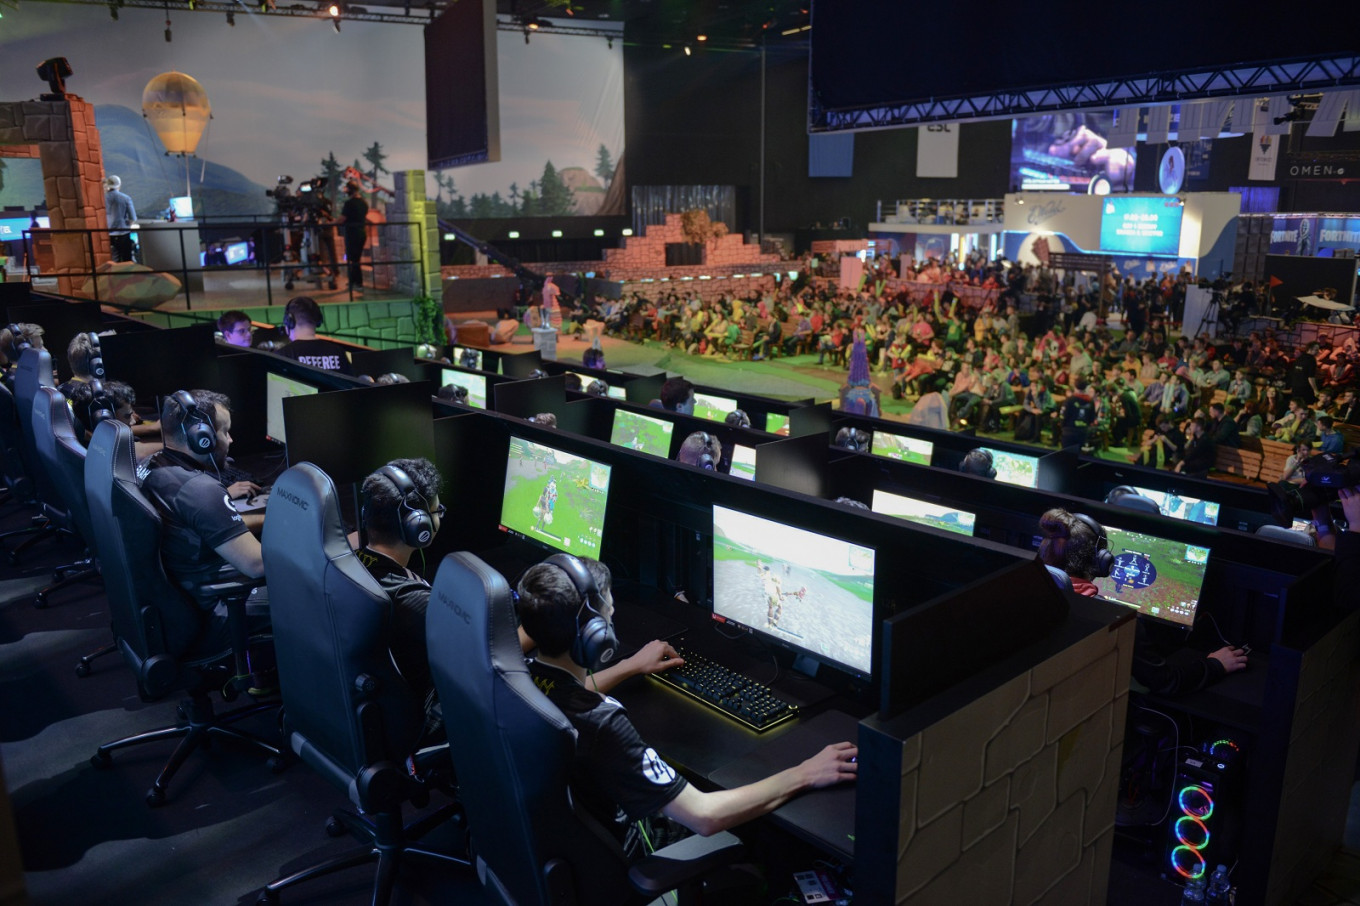 Video game warriors battle it out in Poland